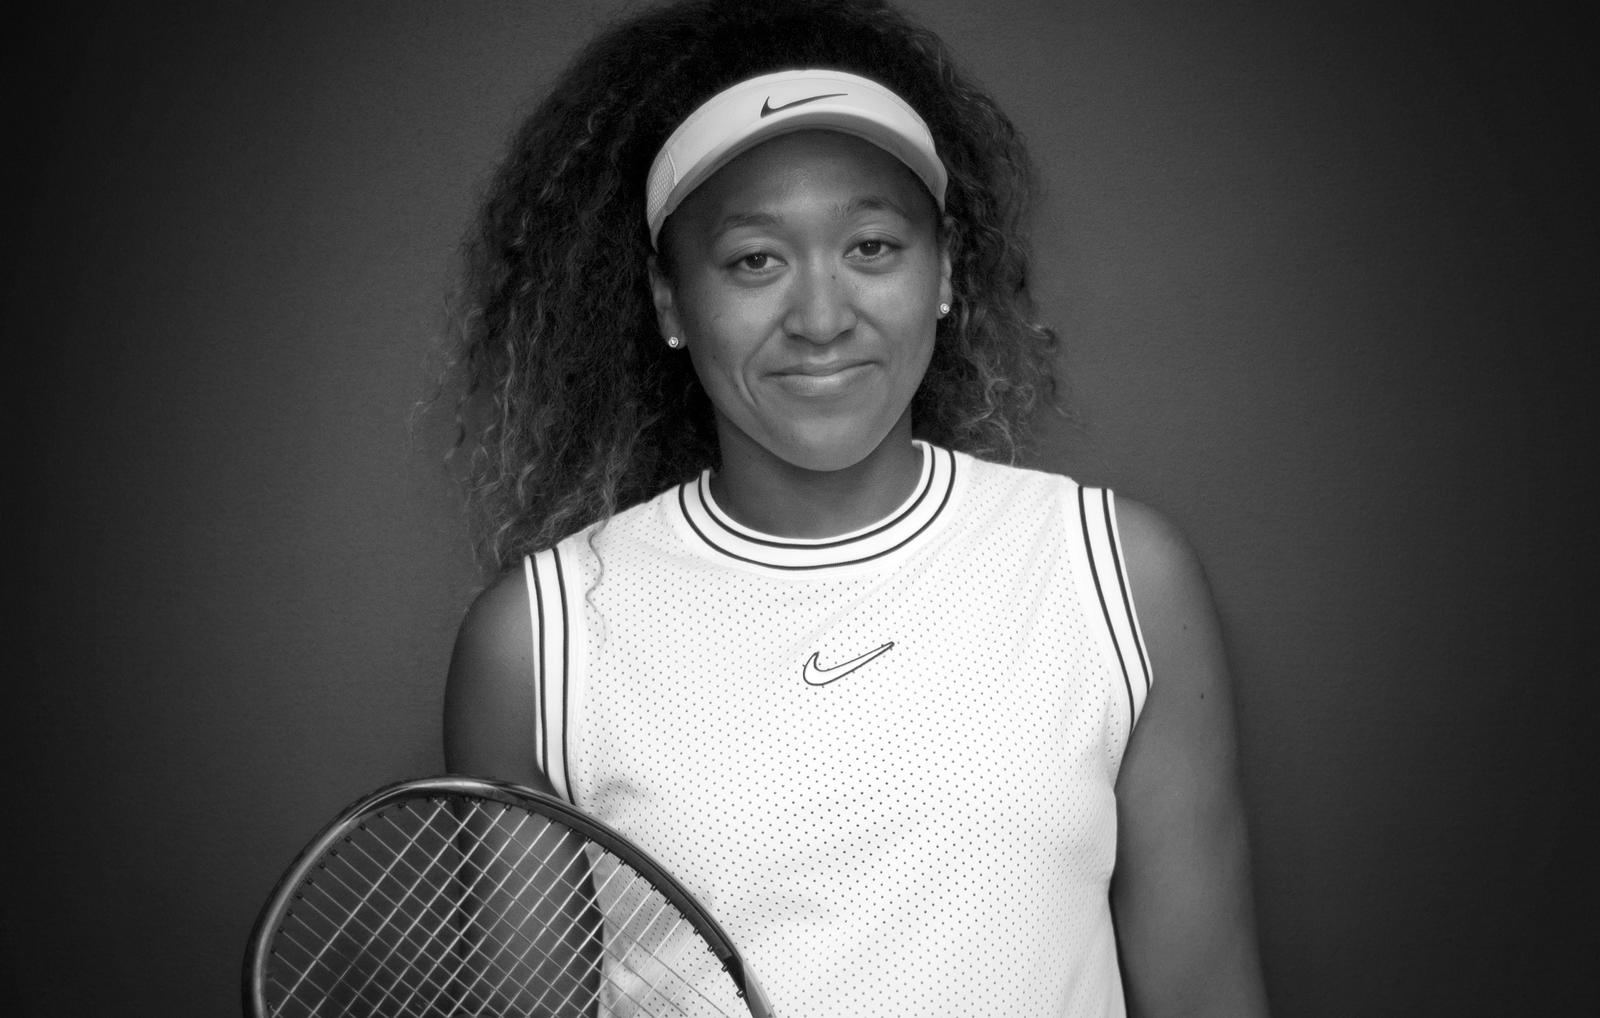 Tennis Superstar Naomi Osaka Signs with Nike 0